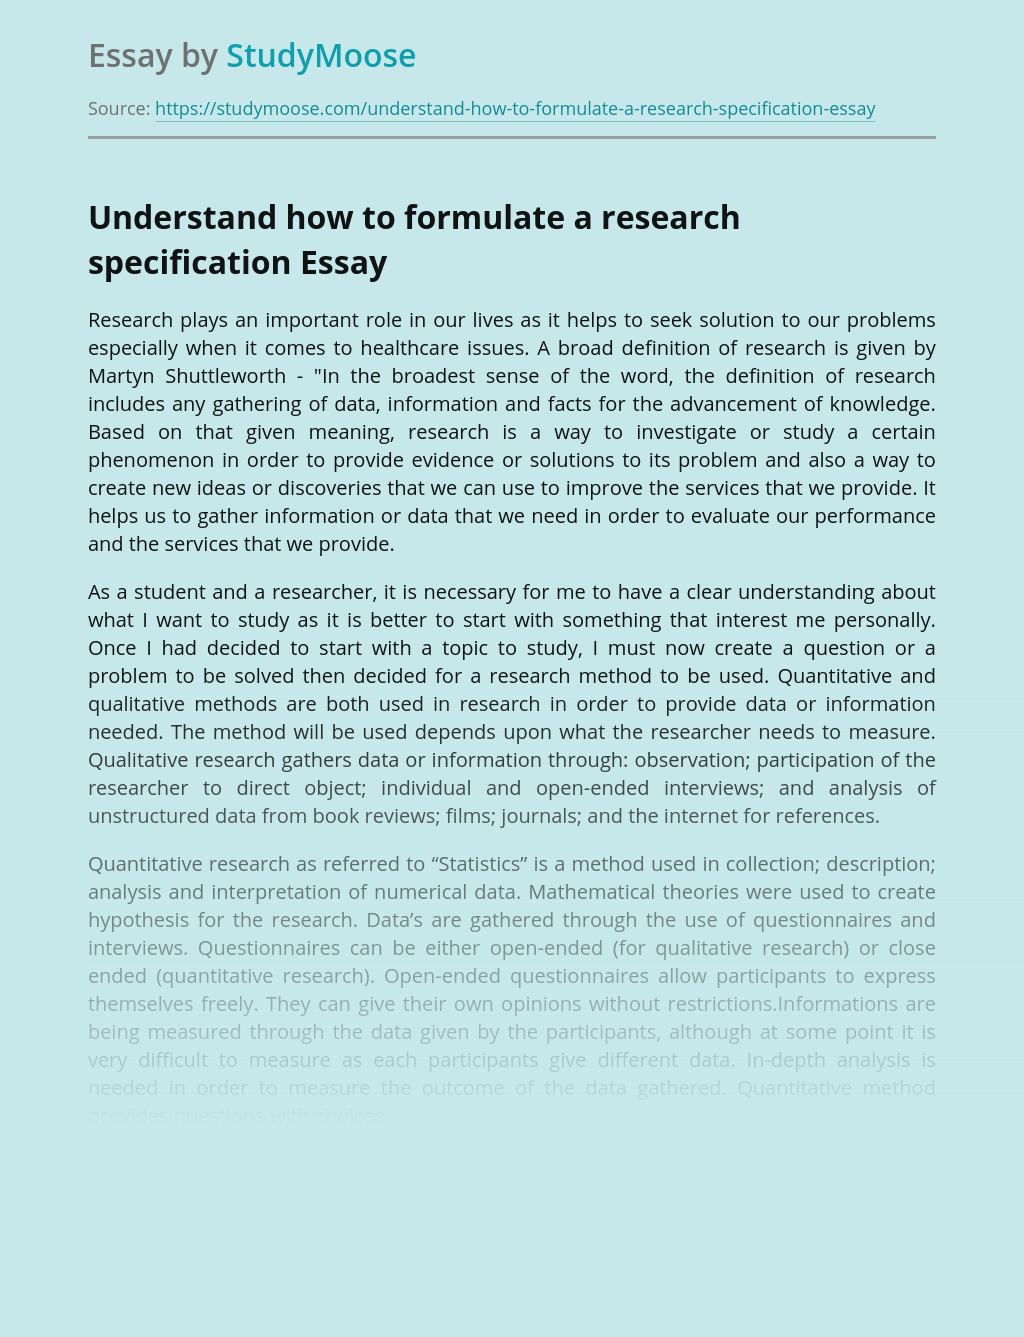 Understand how to formulate a research specification